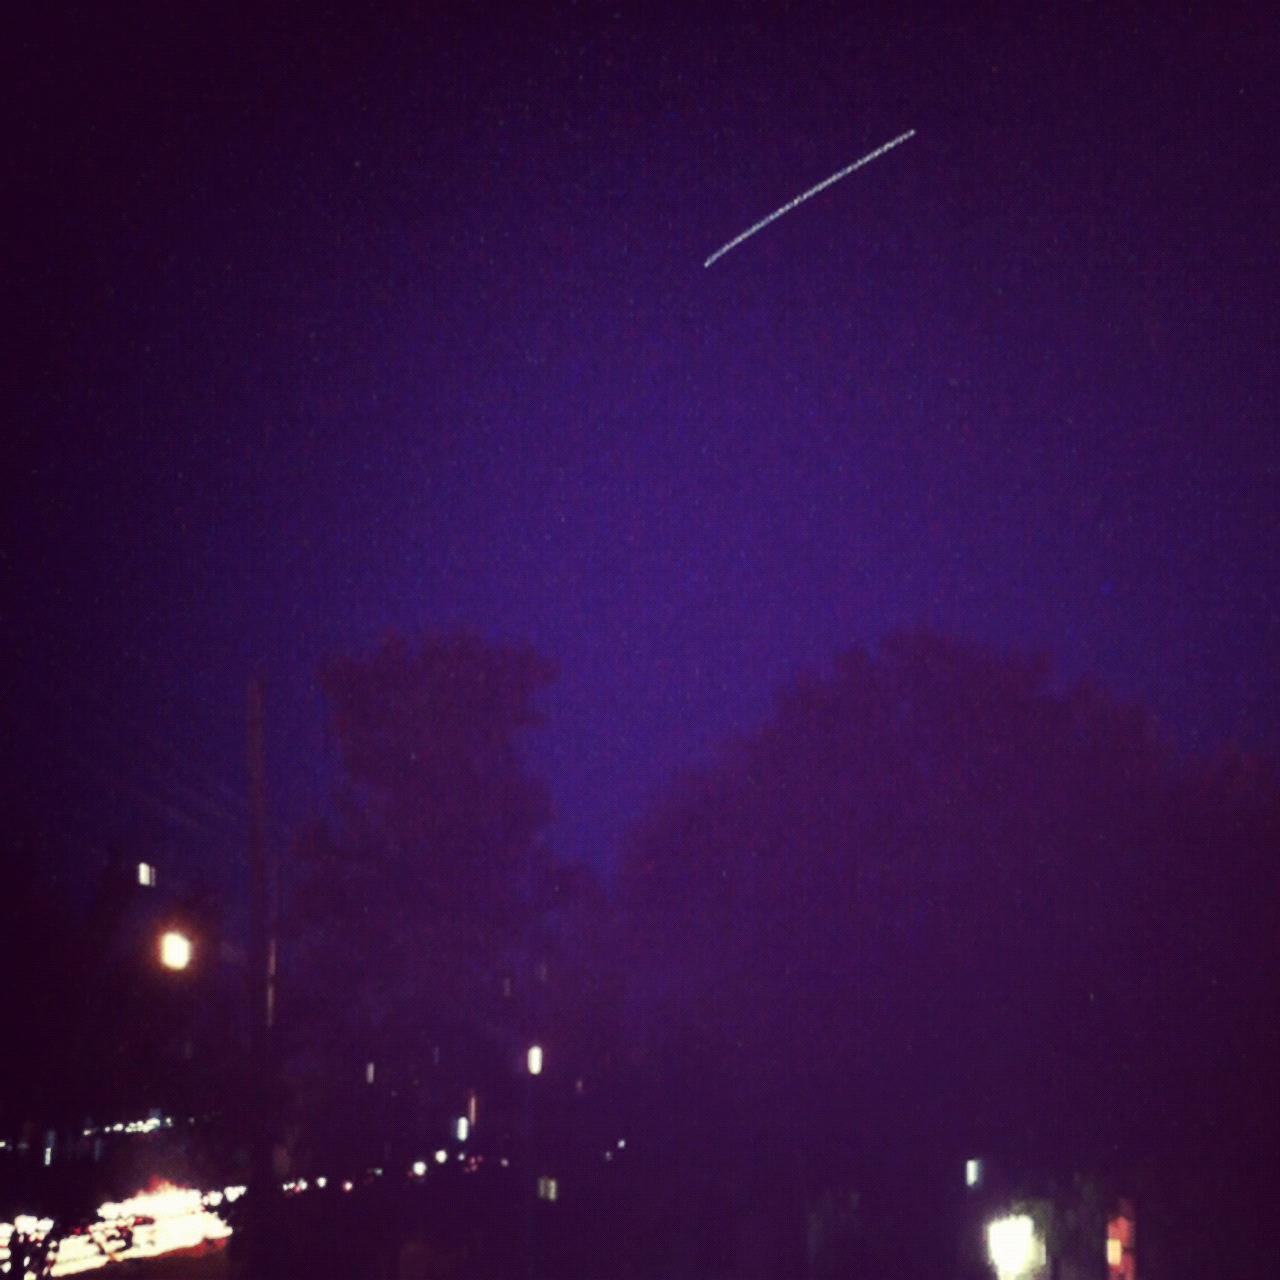 International Space Station (ISS) Using Slow Shutter Cam